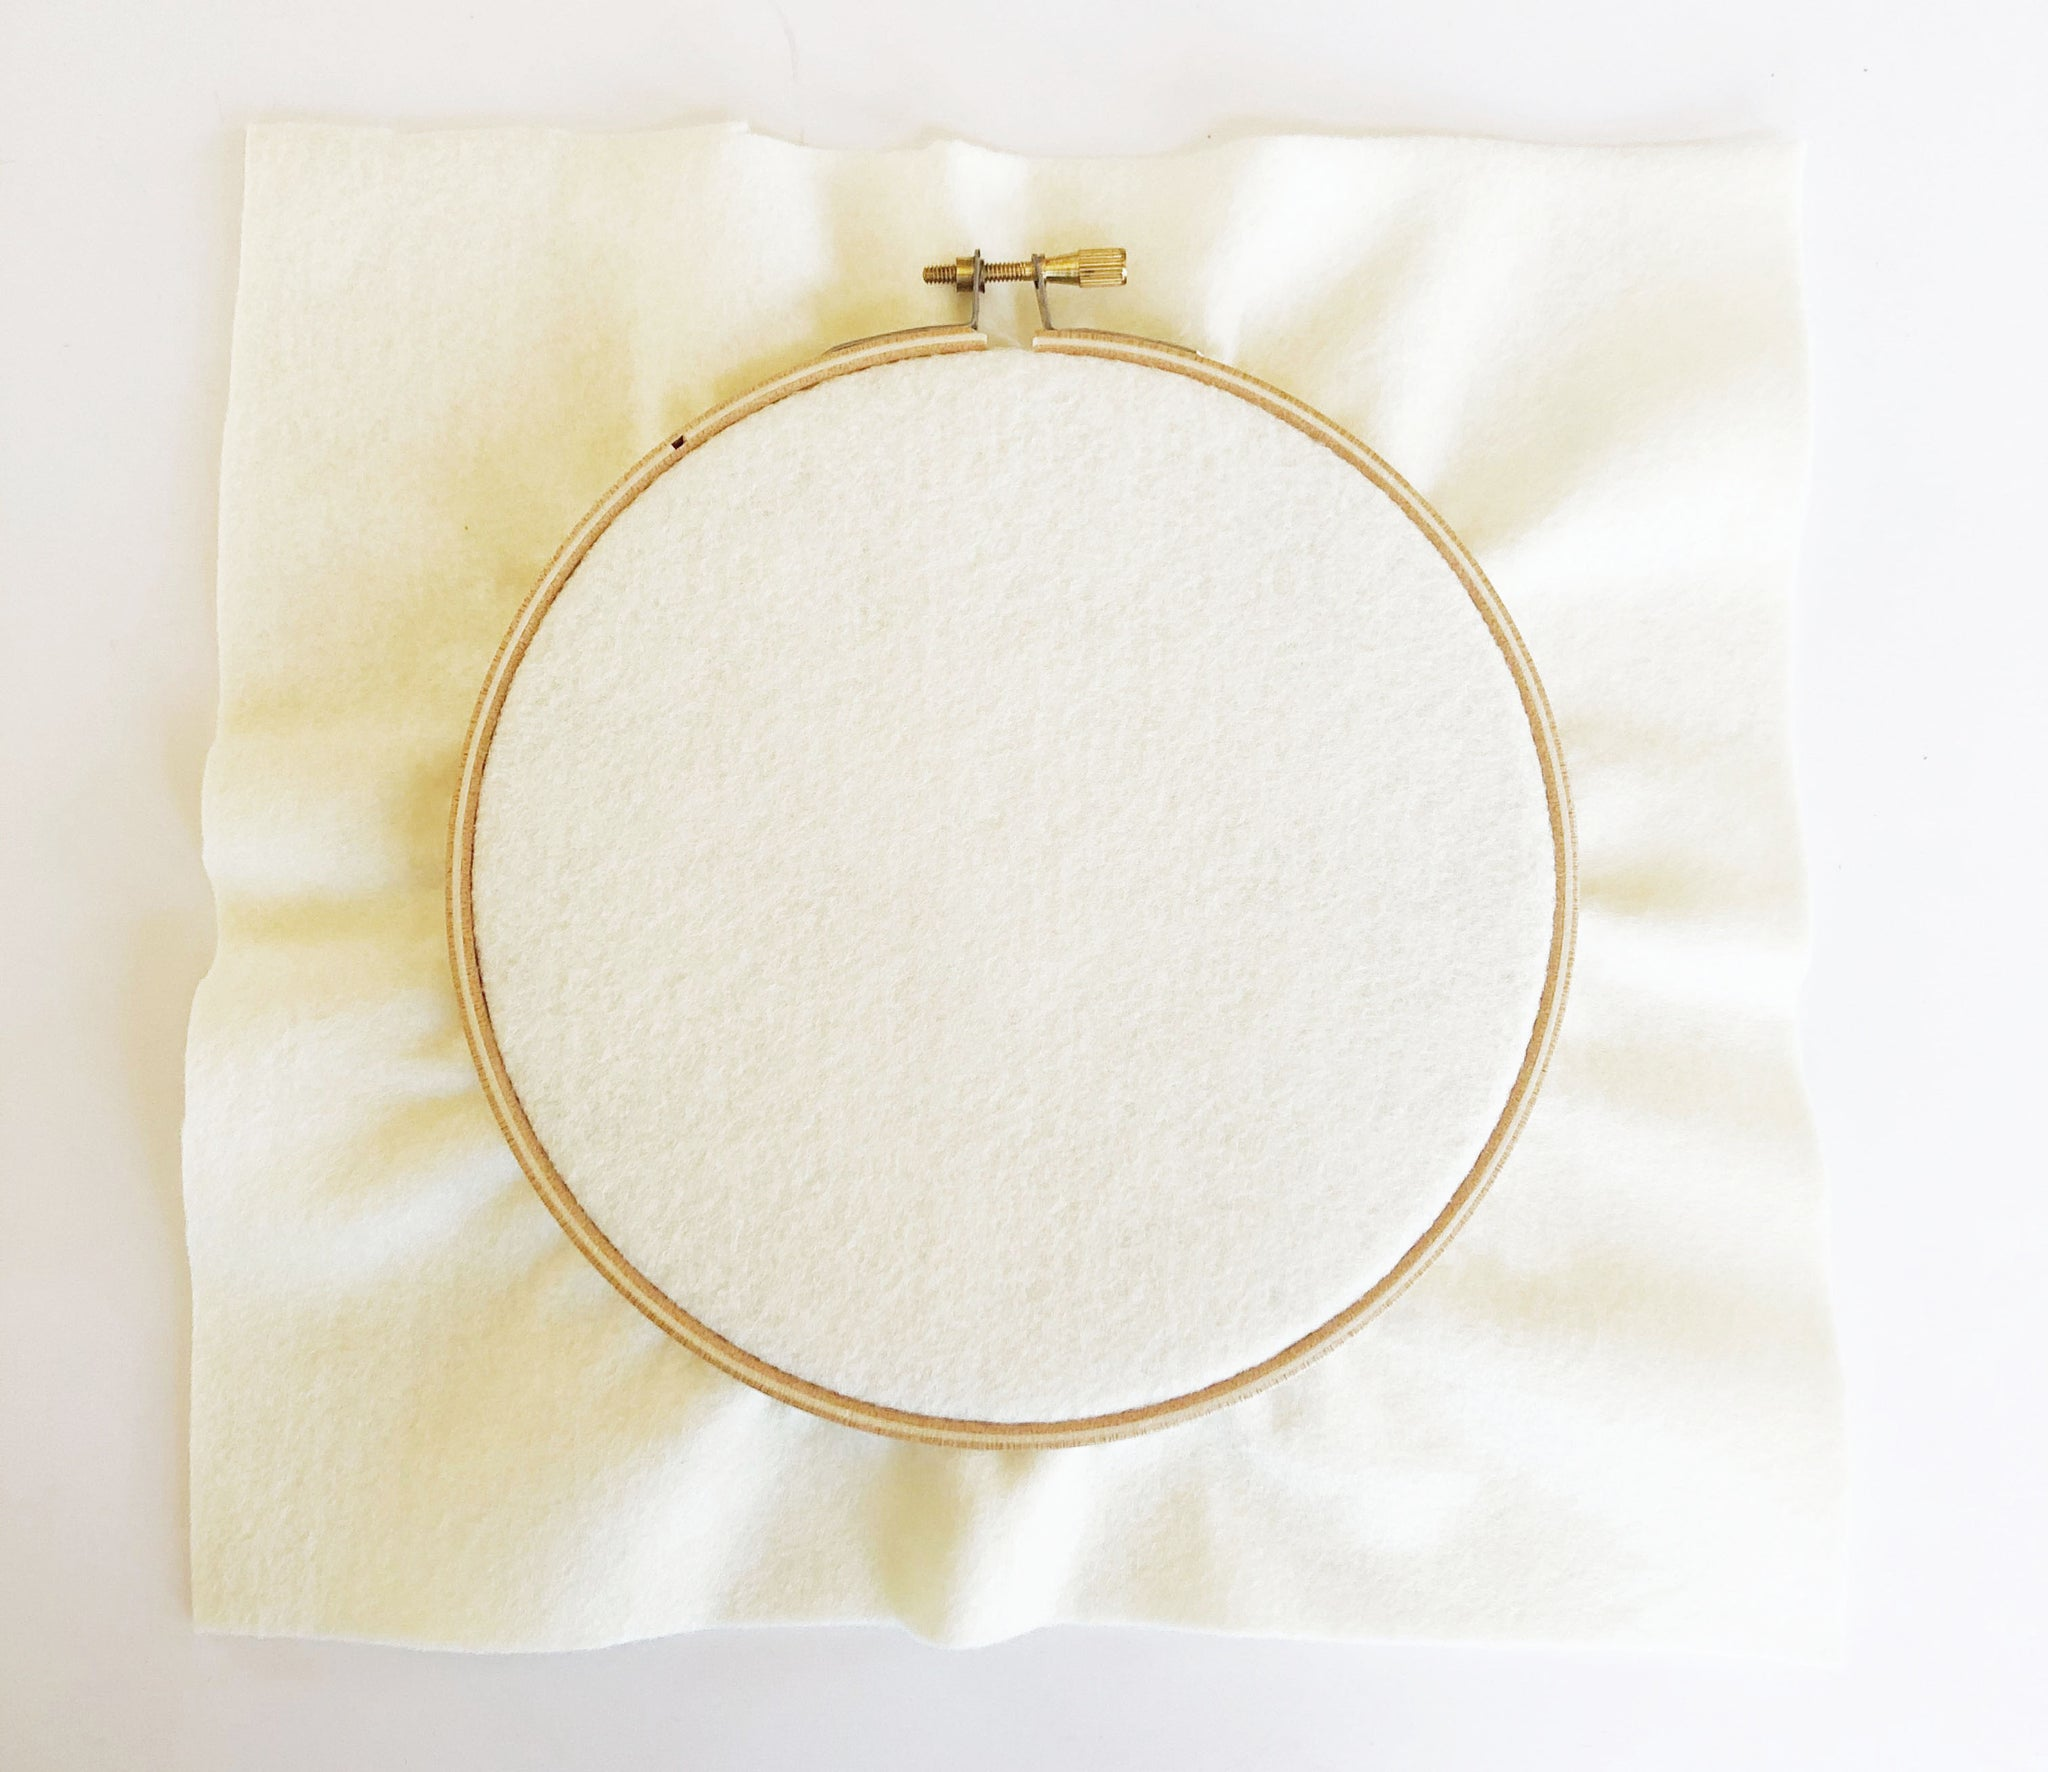 Fitting felt into embroidery hoop